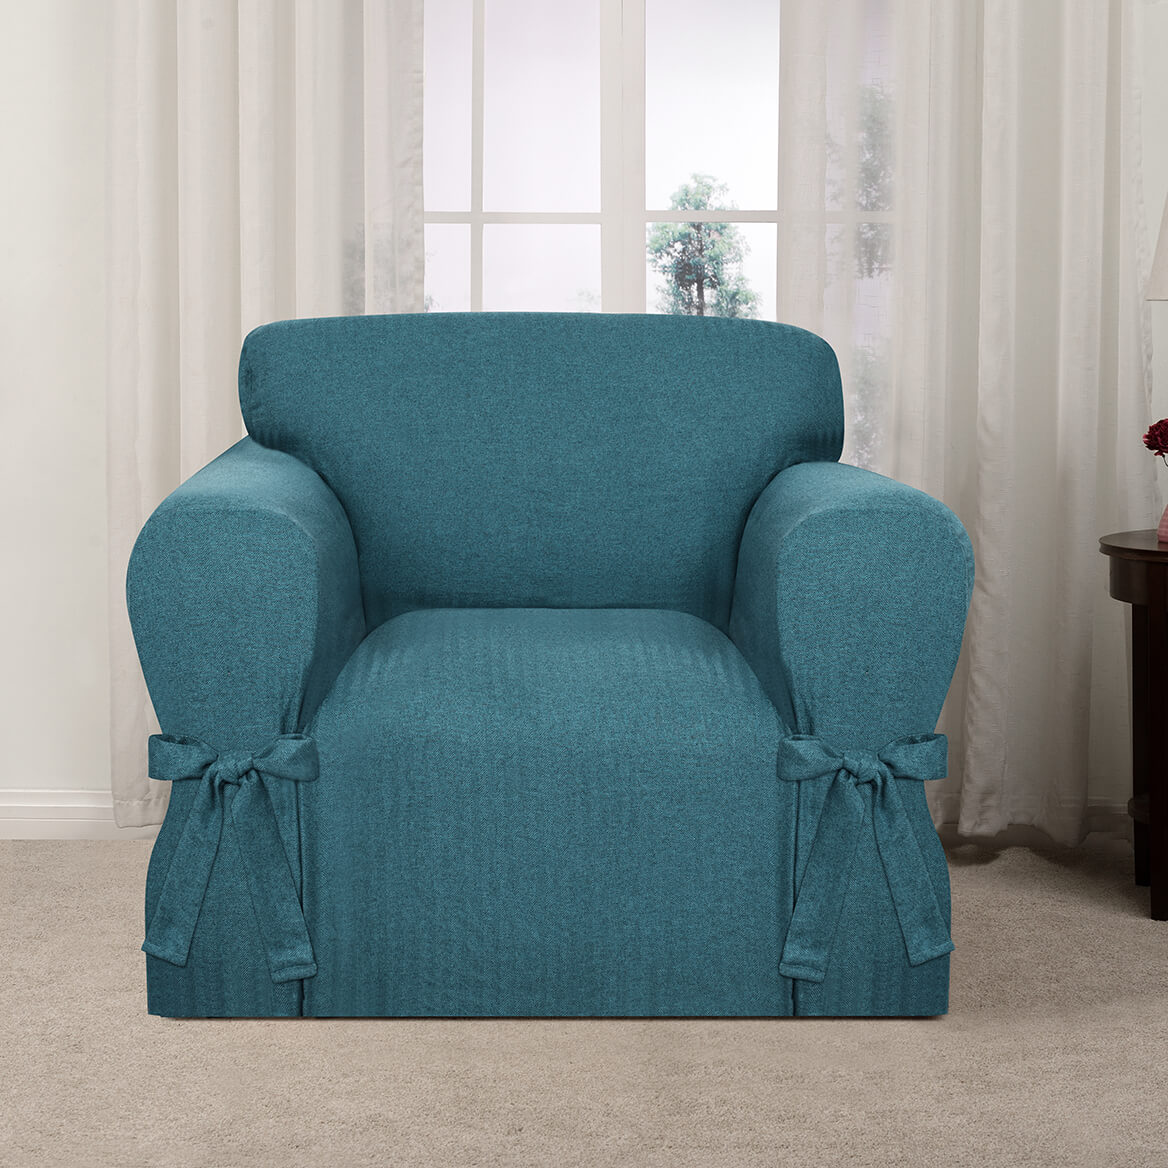 Kathy Ireland Evening Flannel Chair Slipcover-364170